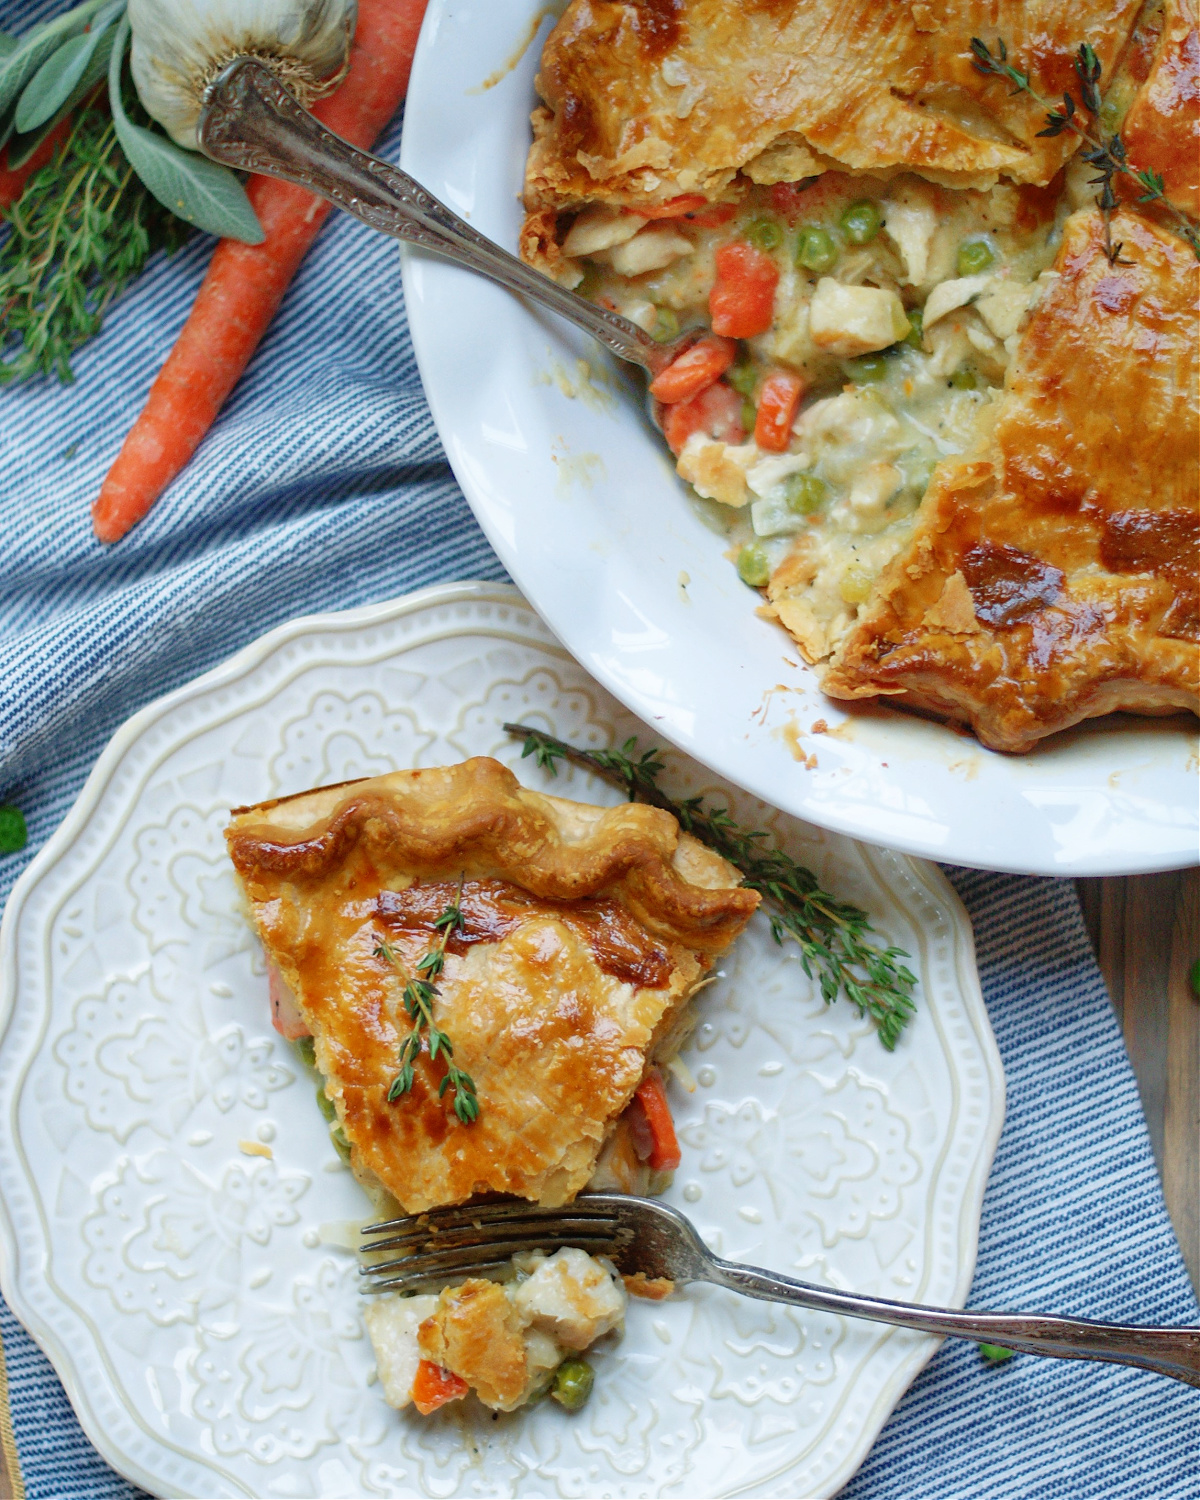 chicken pot pie slice and pie to show ingredients and creamy filling